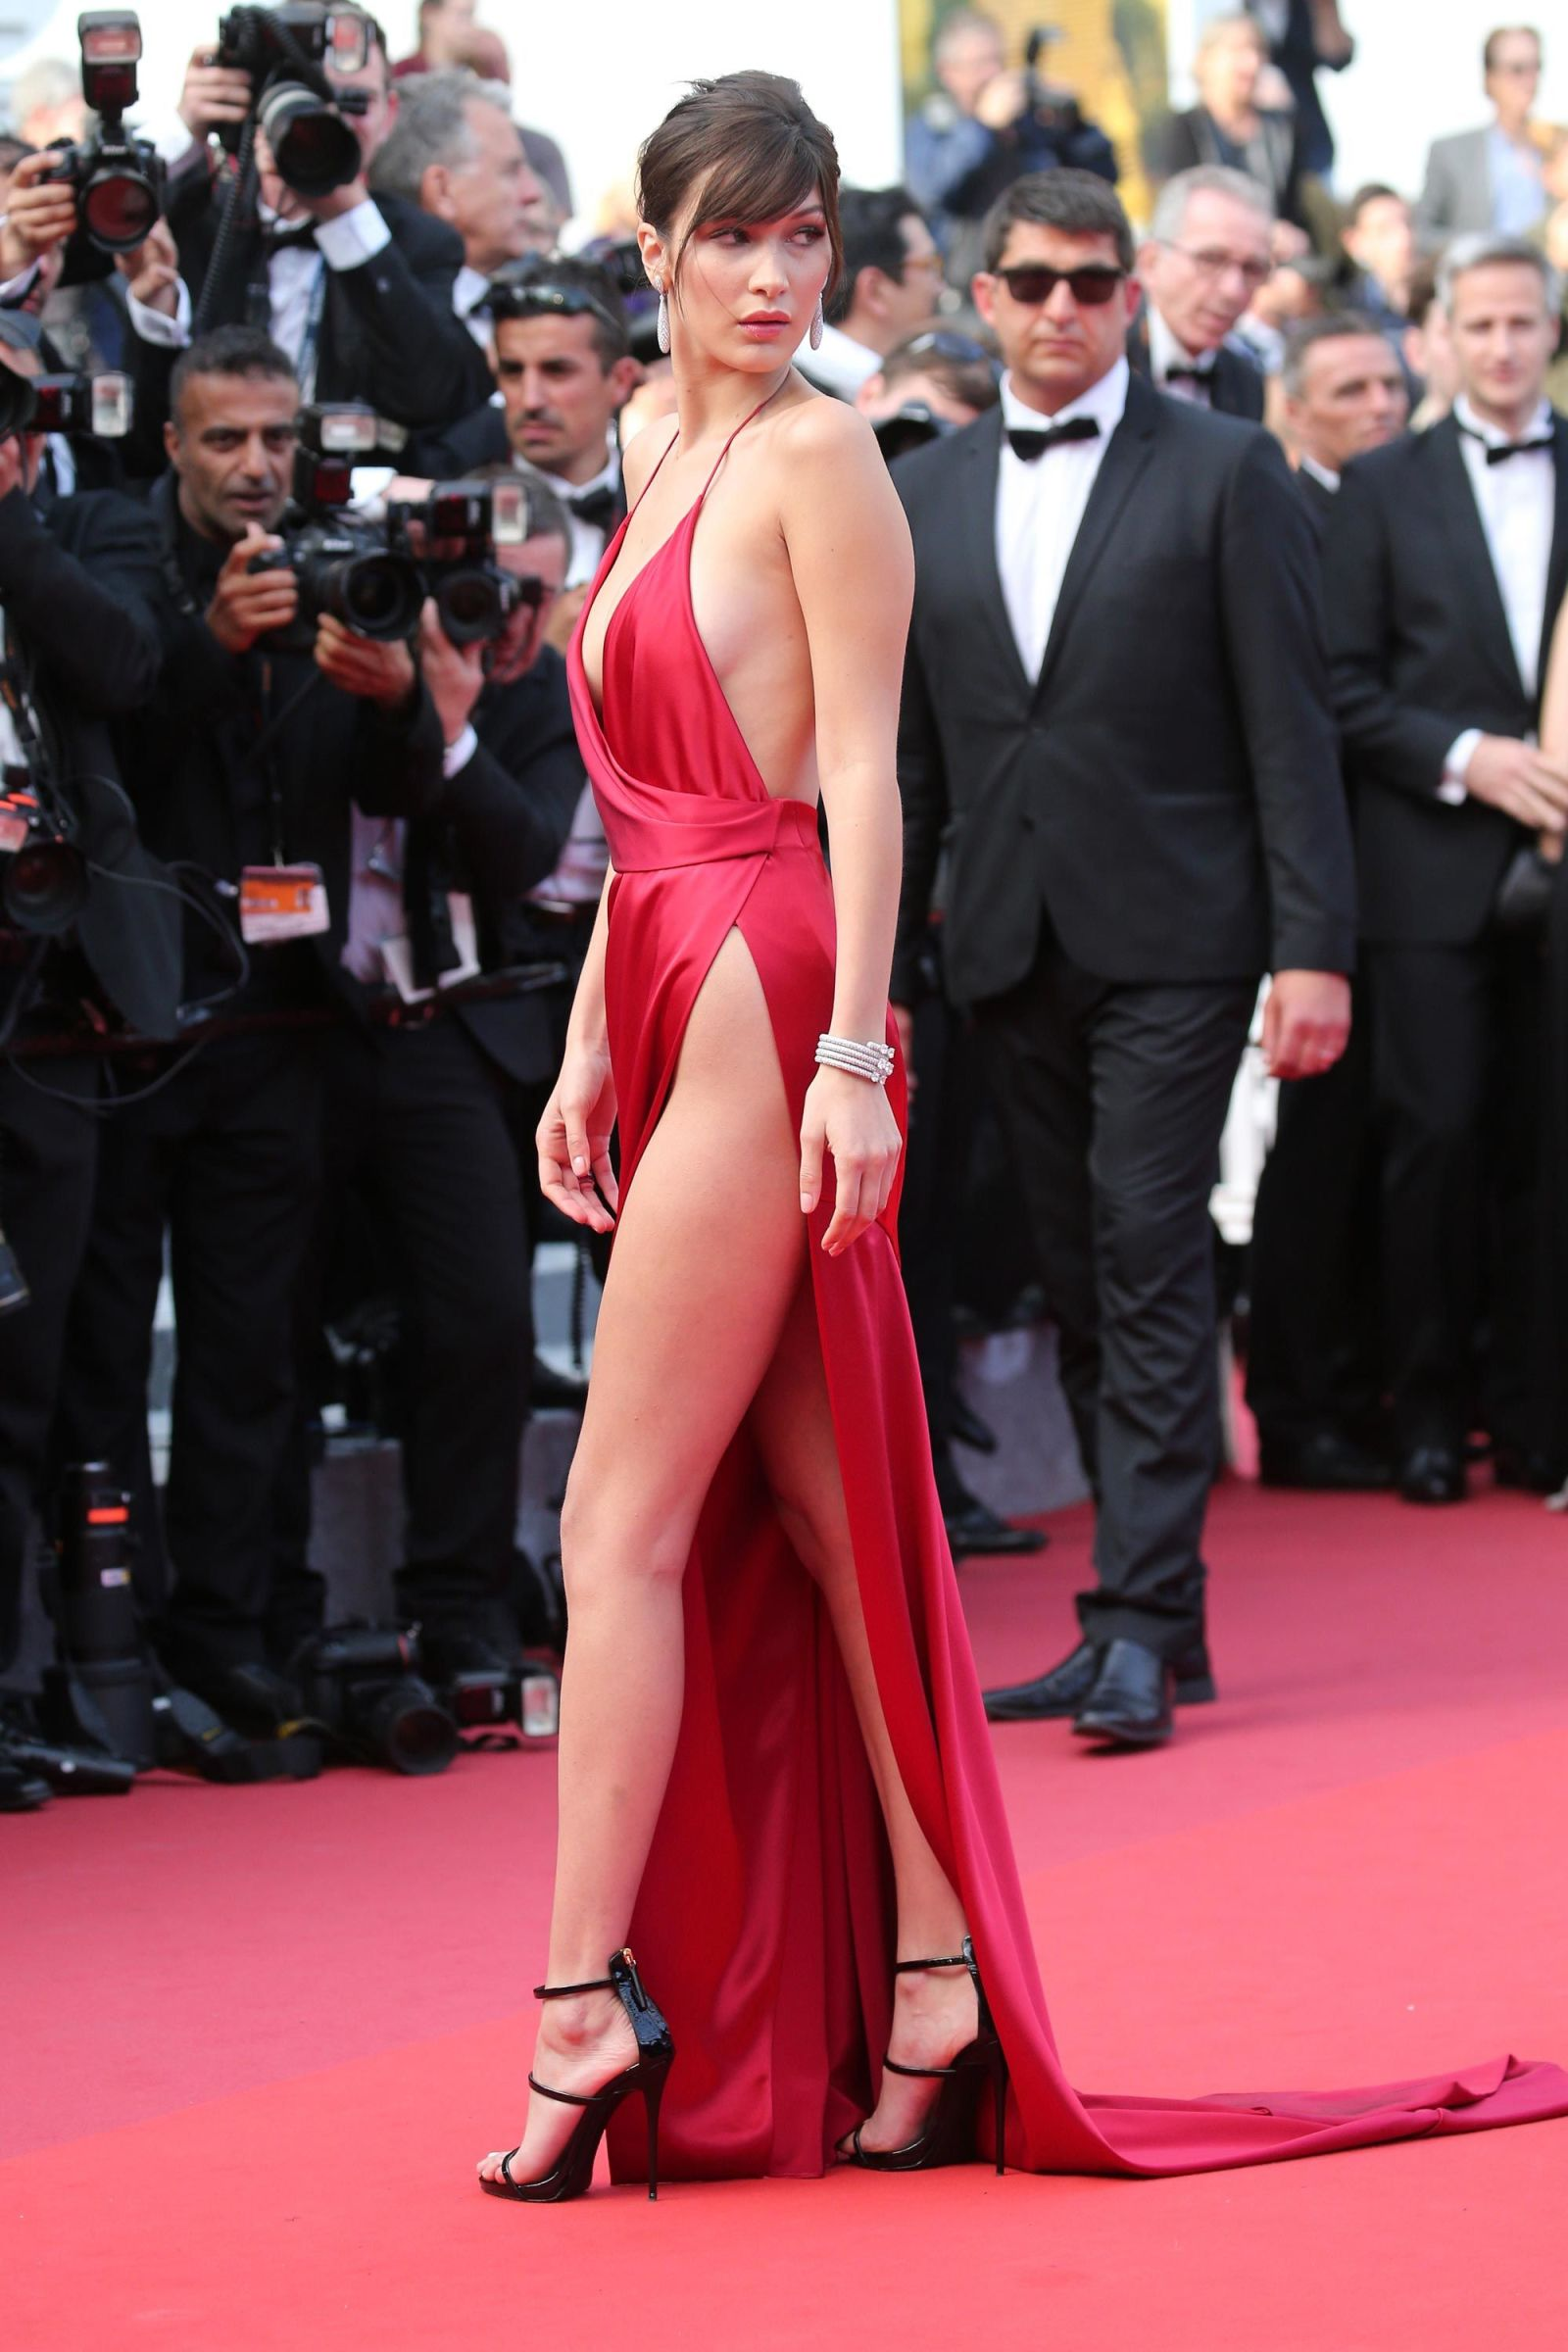 bella hadid red dress cannes 2016 (15)